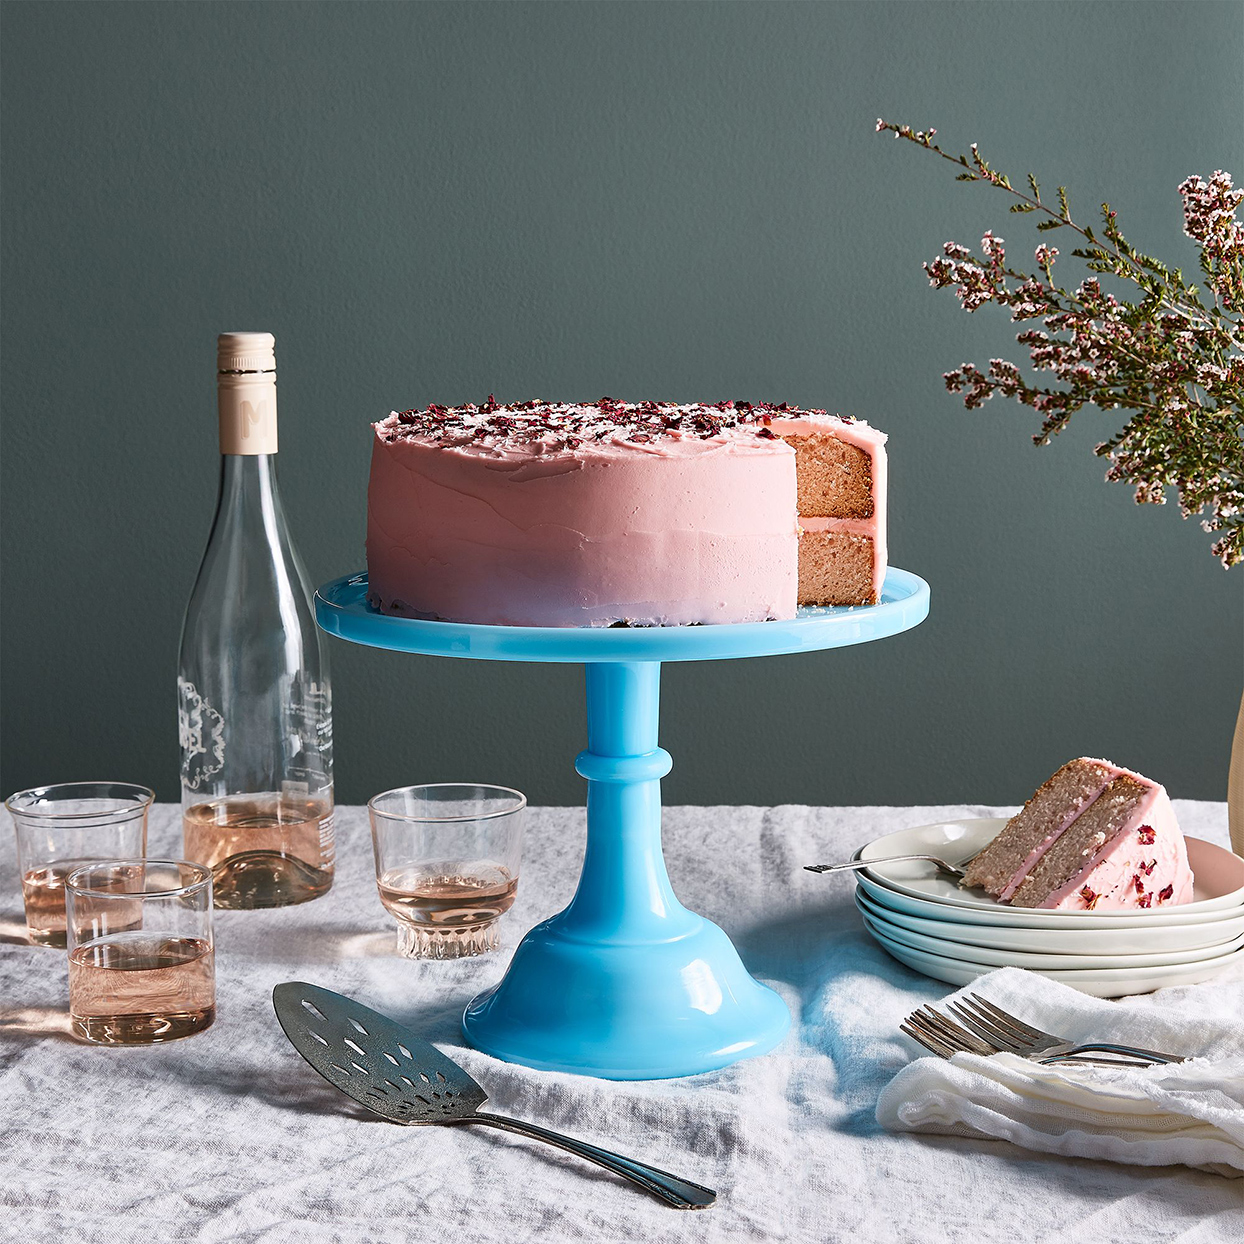 mosser glass cake stand in robin's egg blue